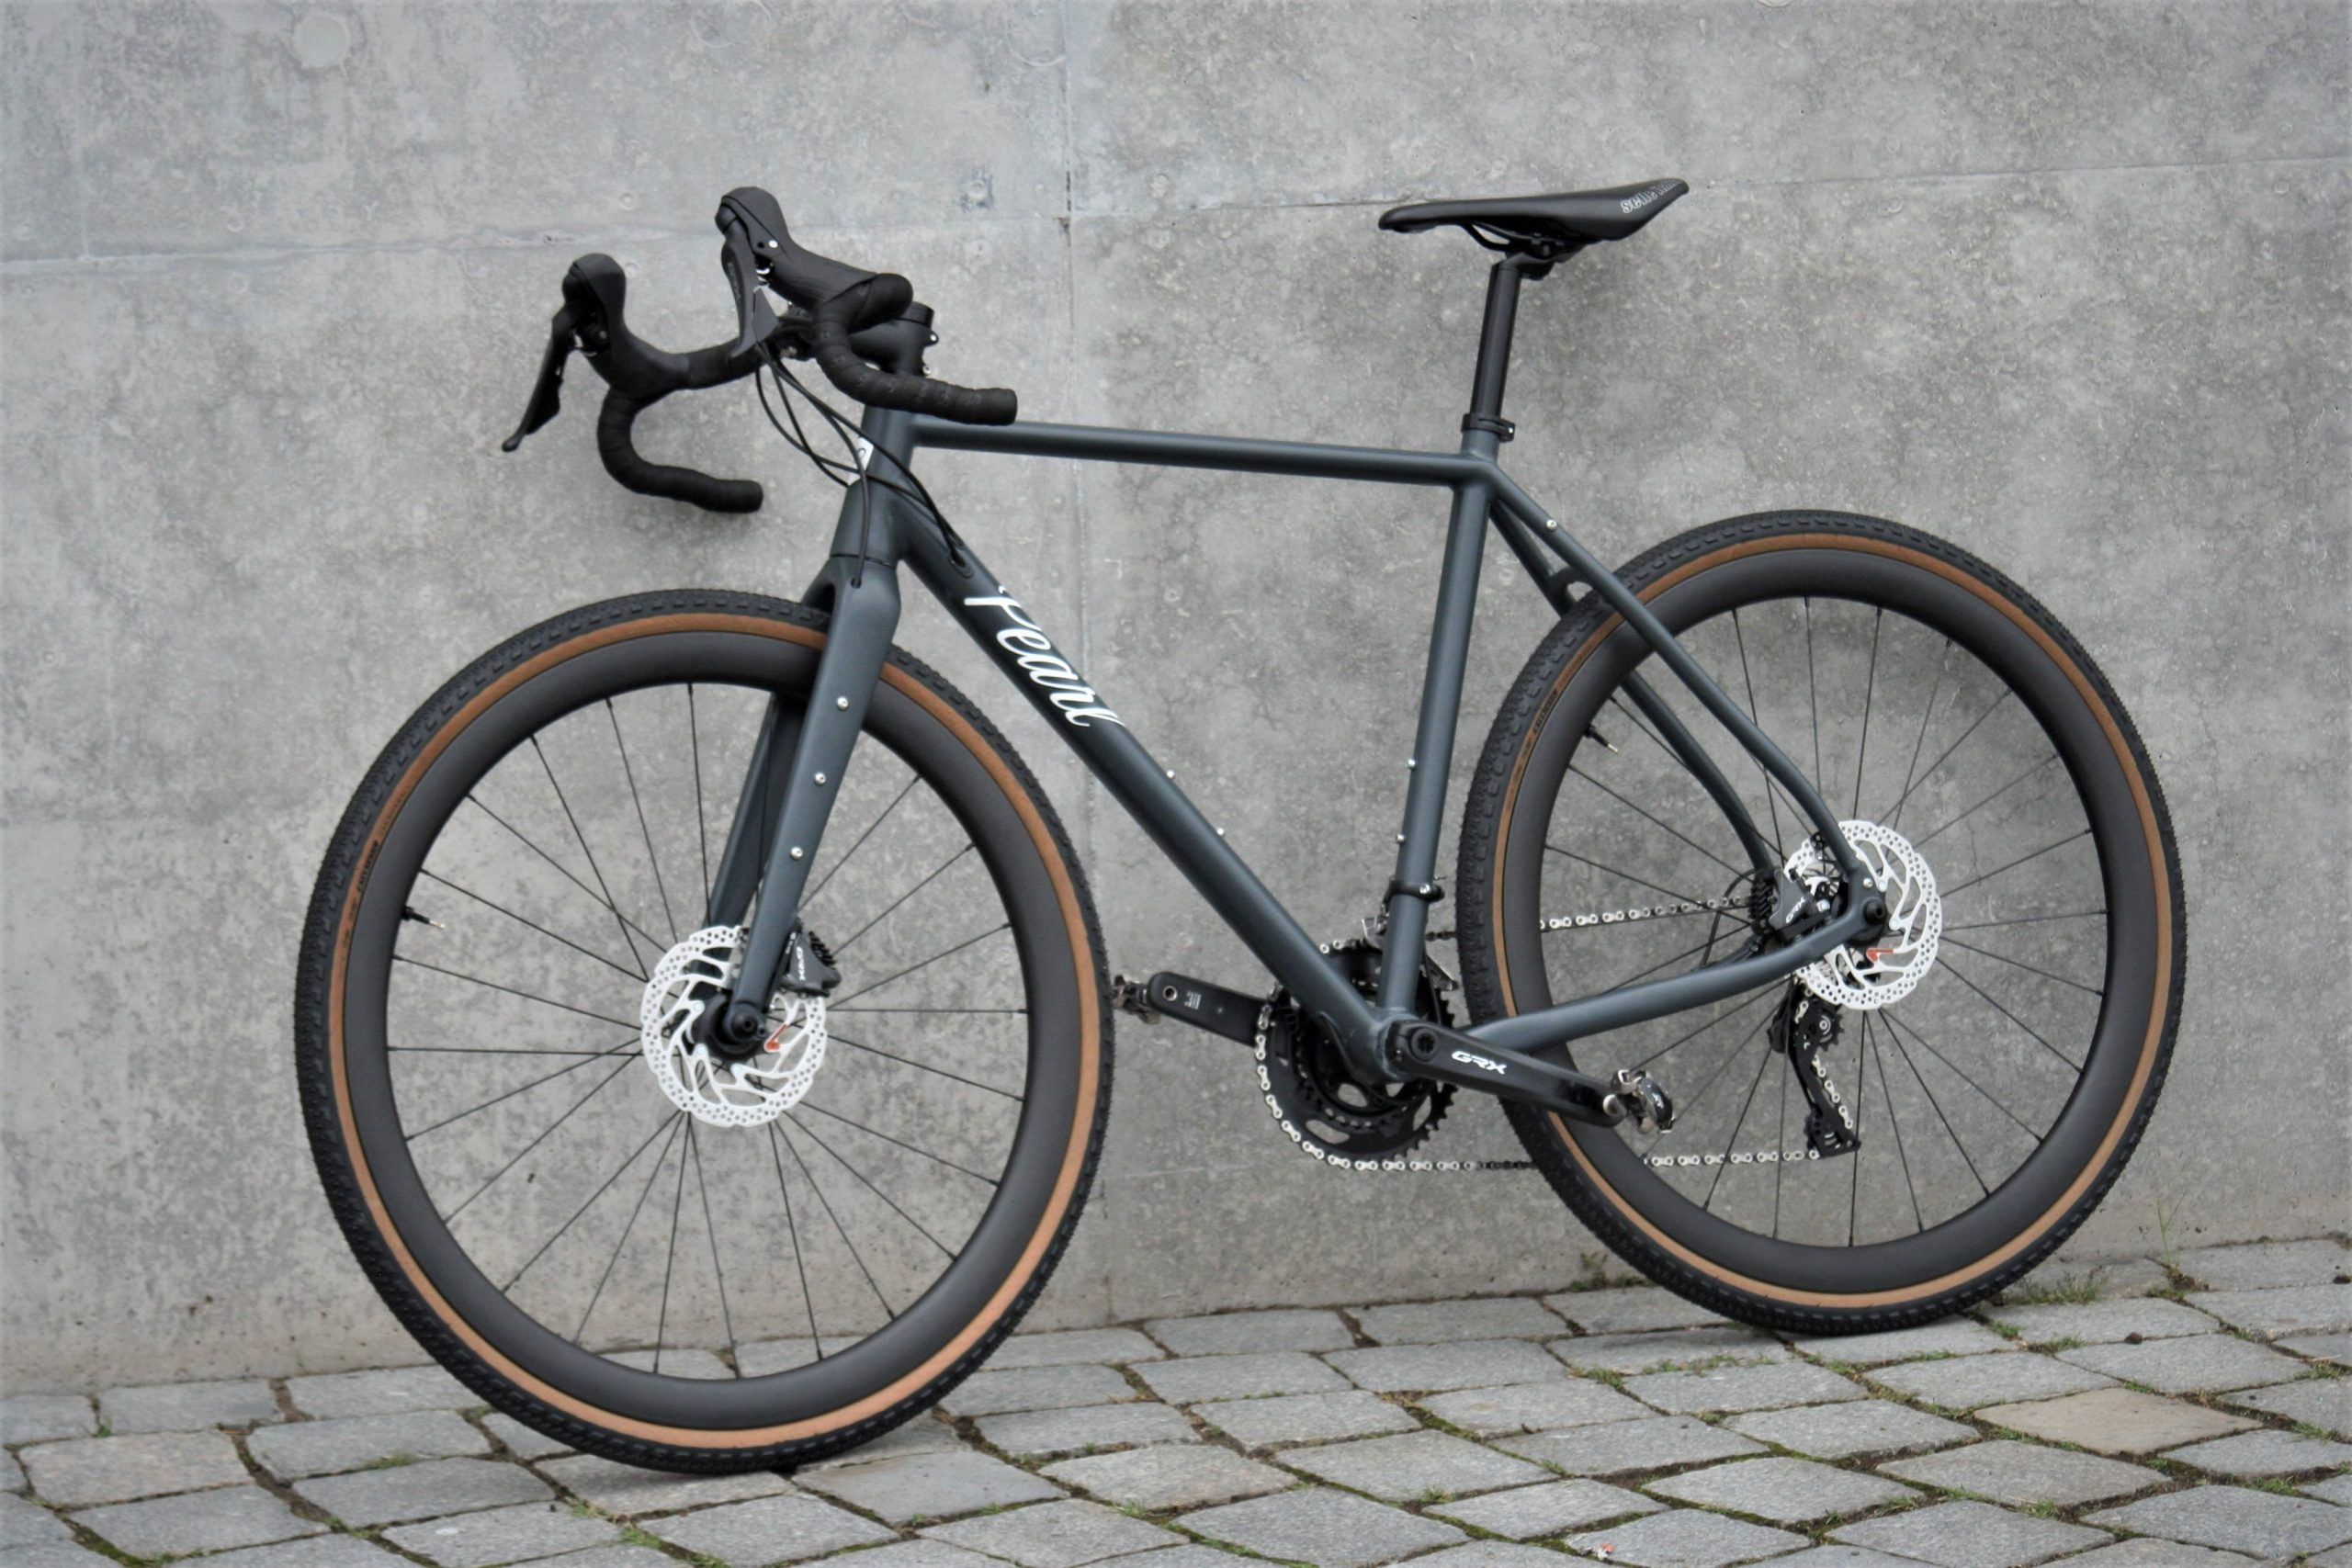 Pearl Gravel AL GRX 810 with Carbon Hoops